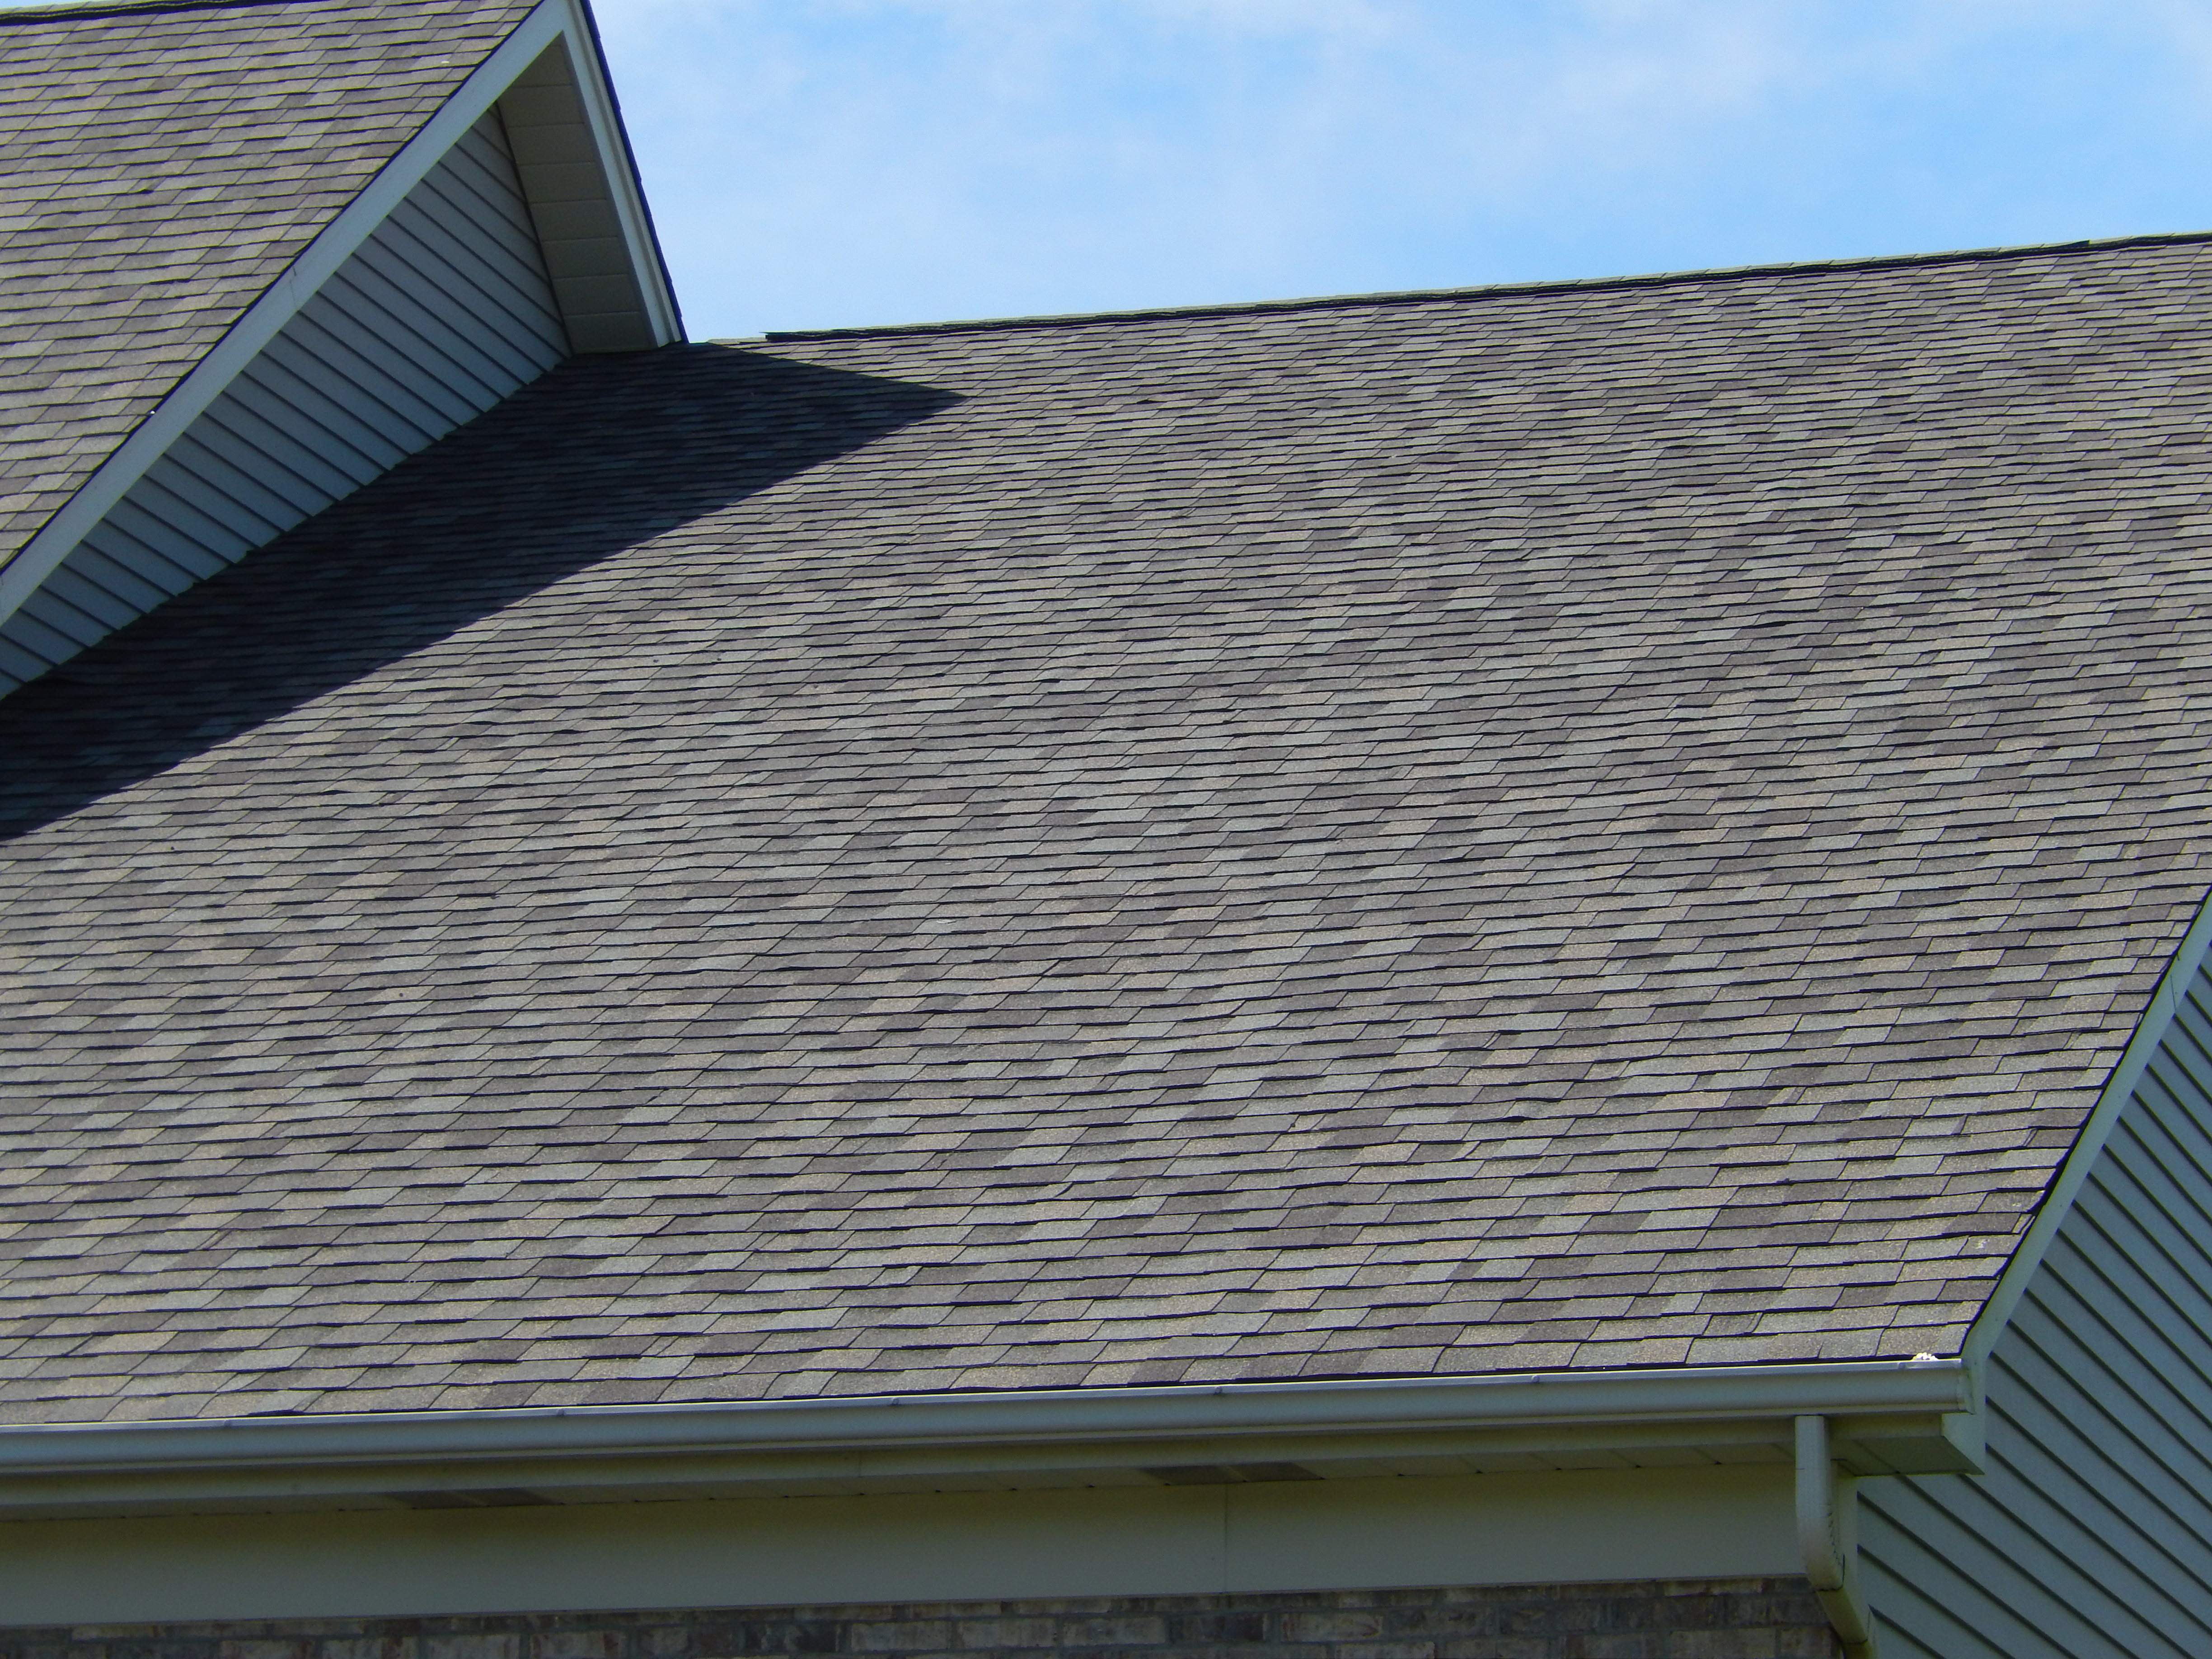 Roofing Contractors In Indian Head Park Your Roof Is In